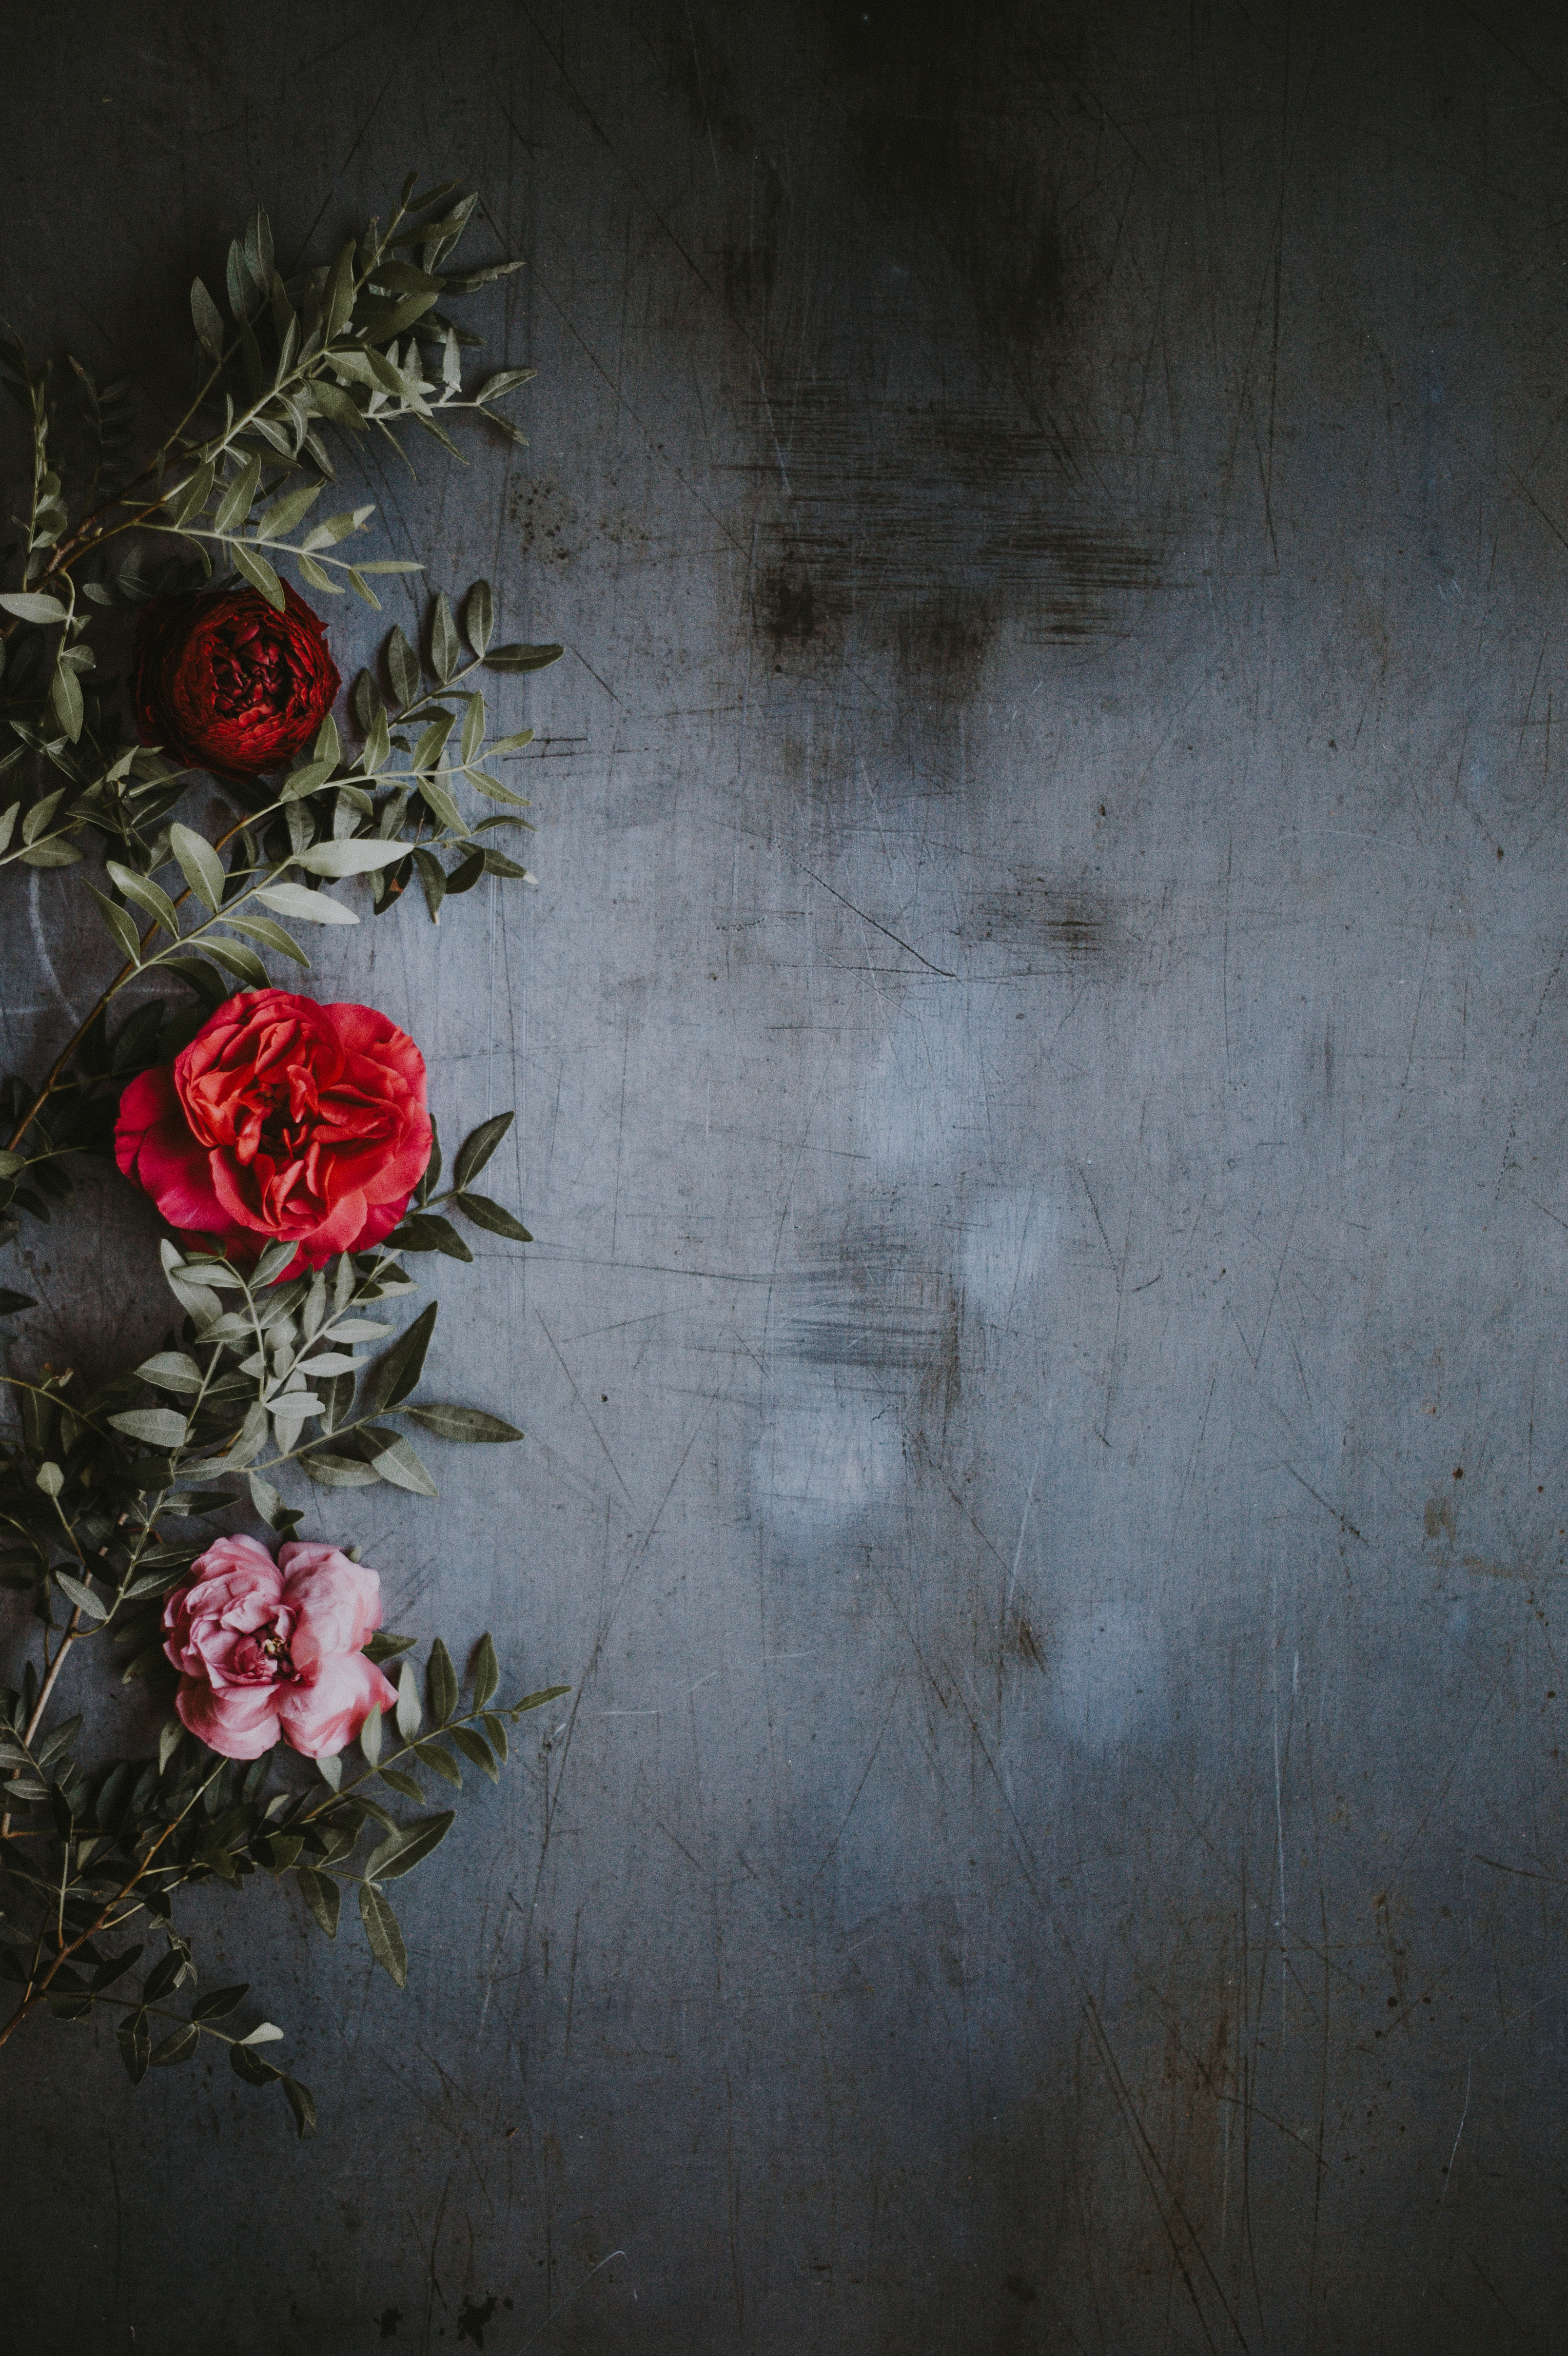 Photography Background Images Hd 3216x4832 Download Hd Wallpaper Wallpapertip